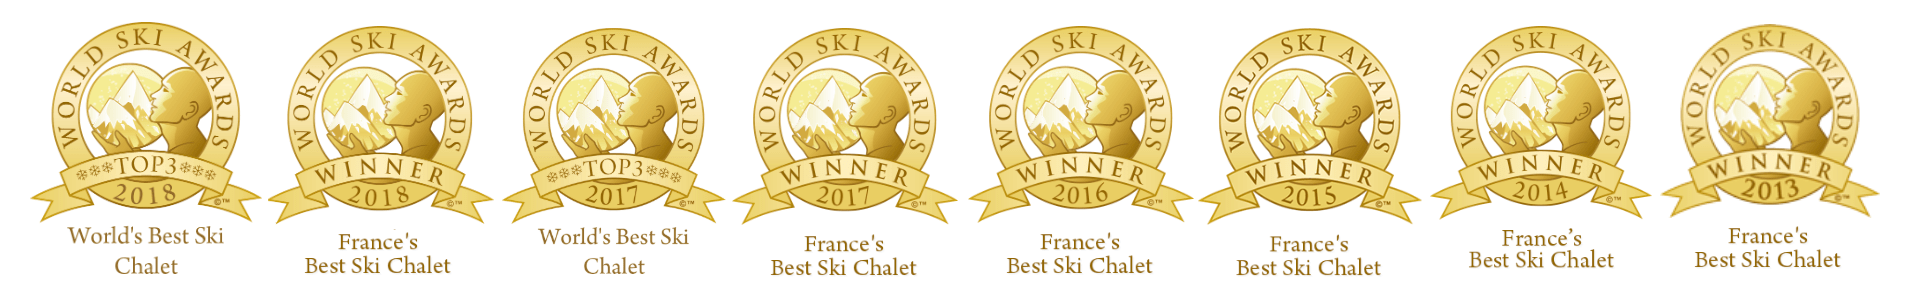 world ski awards shields won by consensio